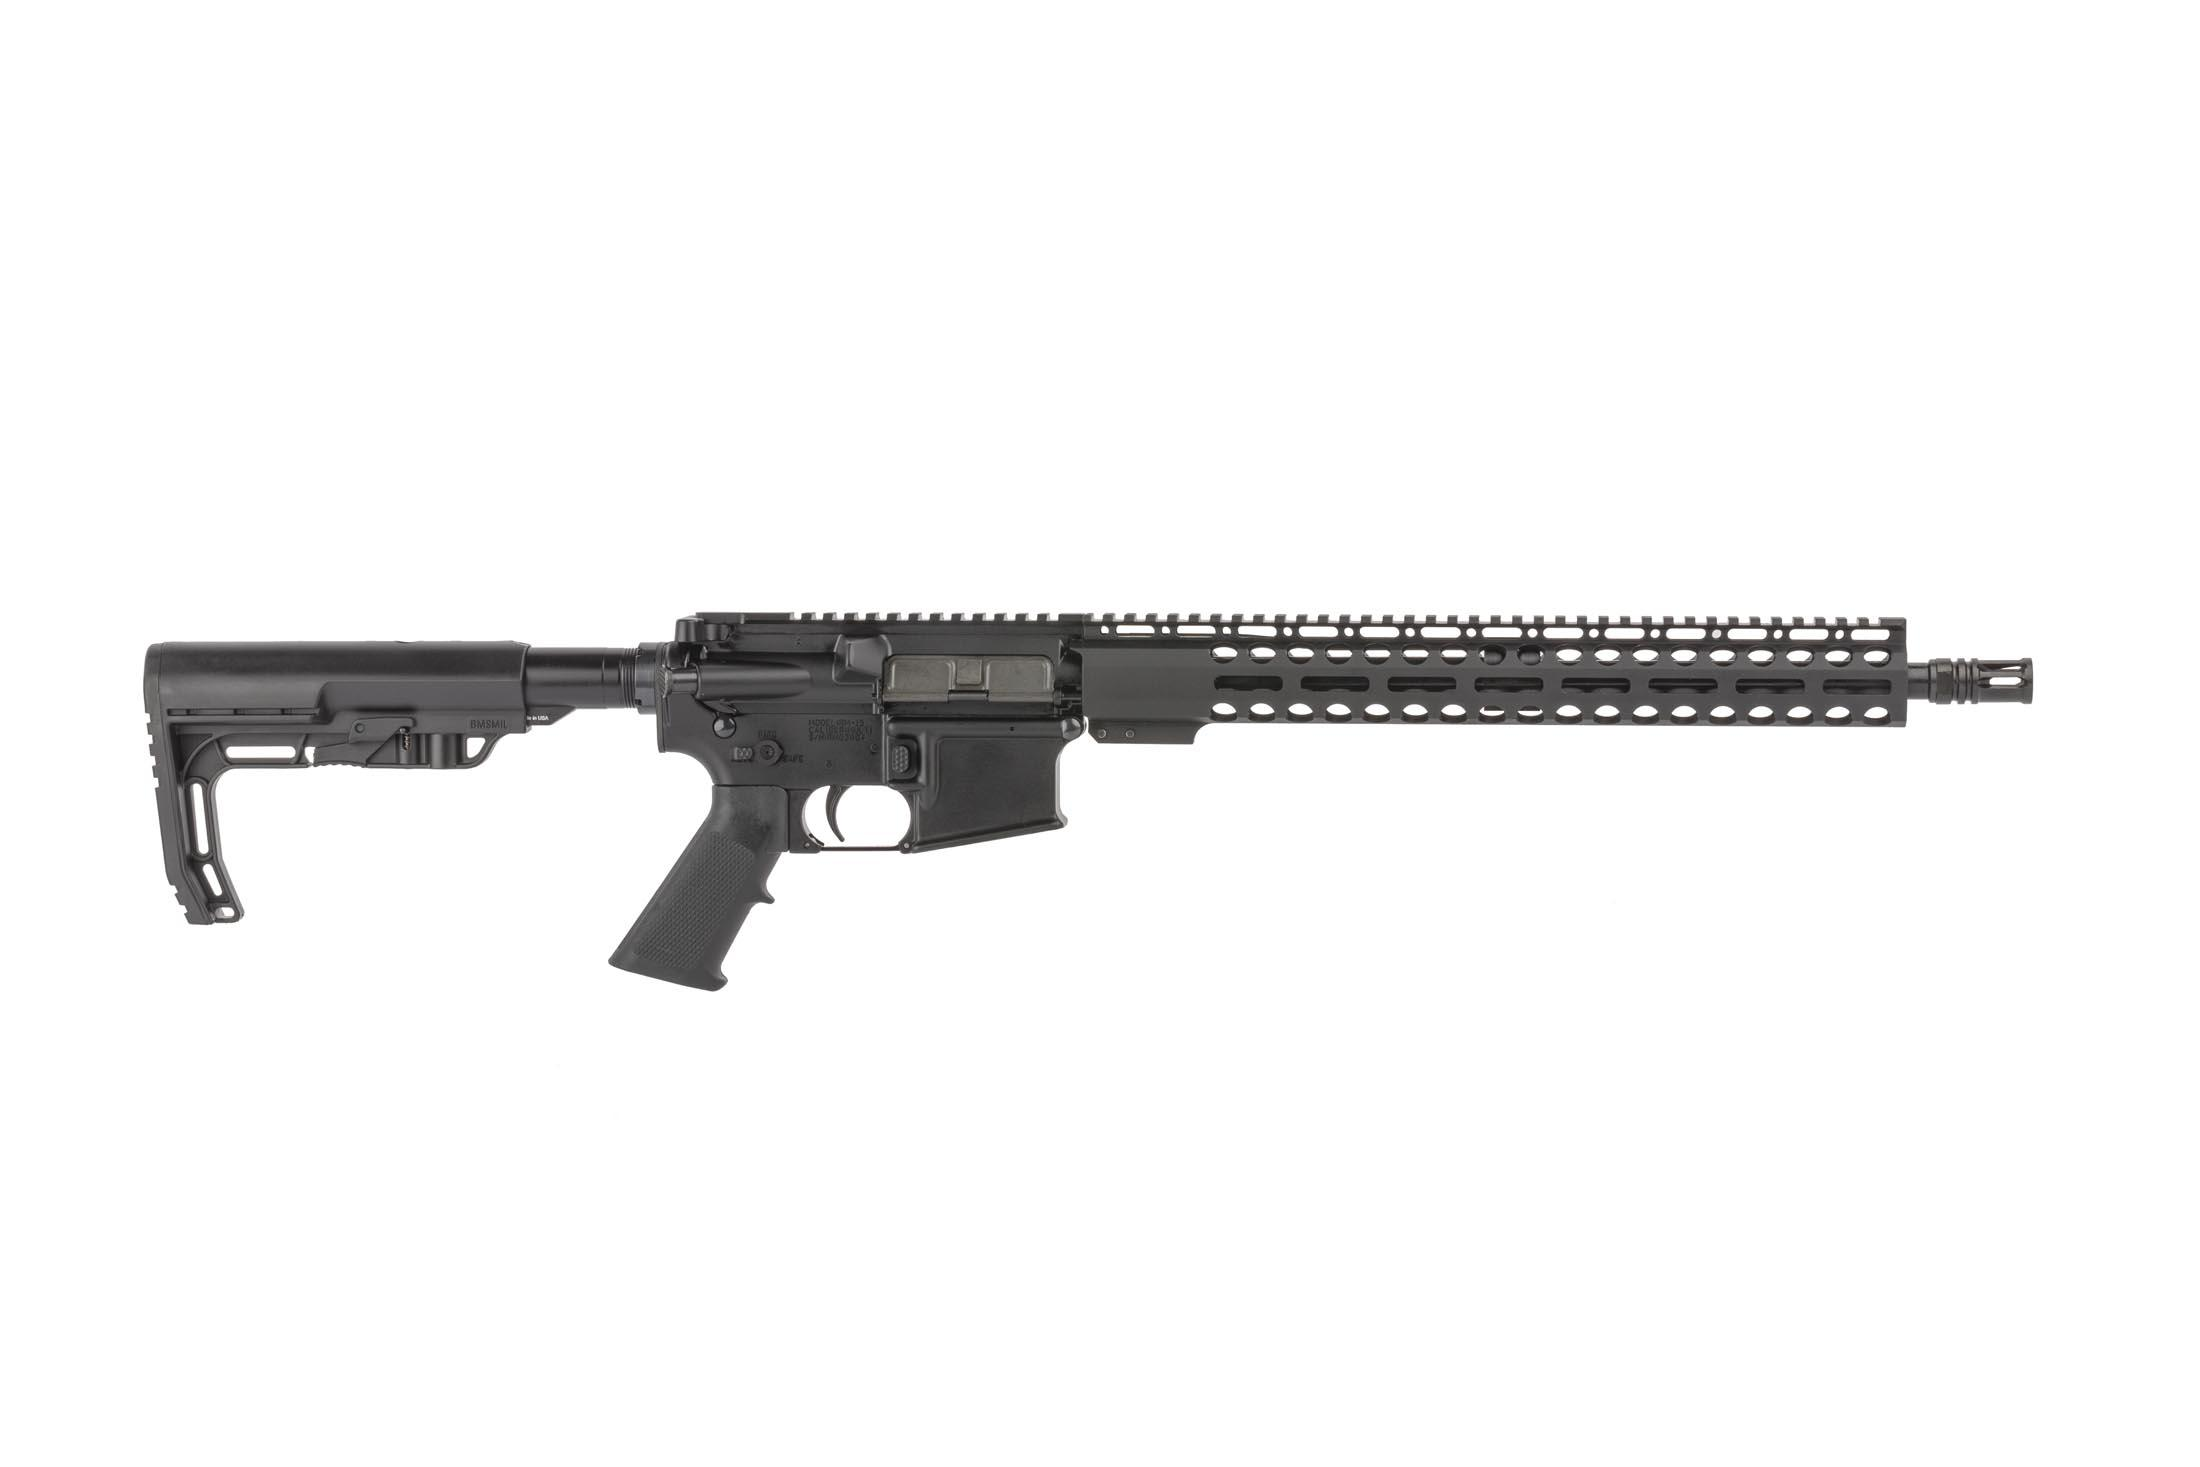 Radical Firearms 16in 7.62x39mm AR-15 rifle has a reliable carbine length gas system and M-LOK handguard